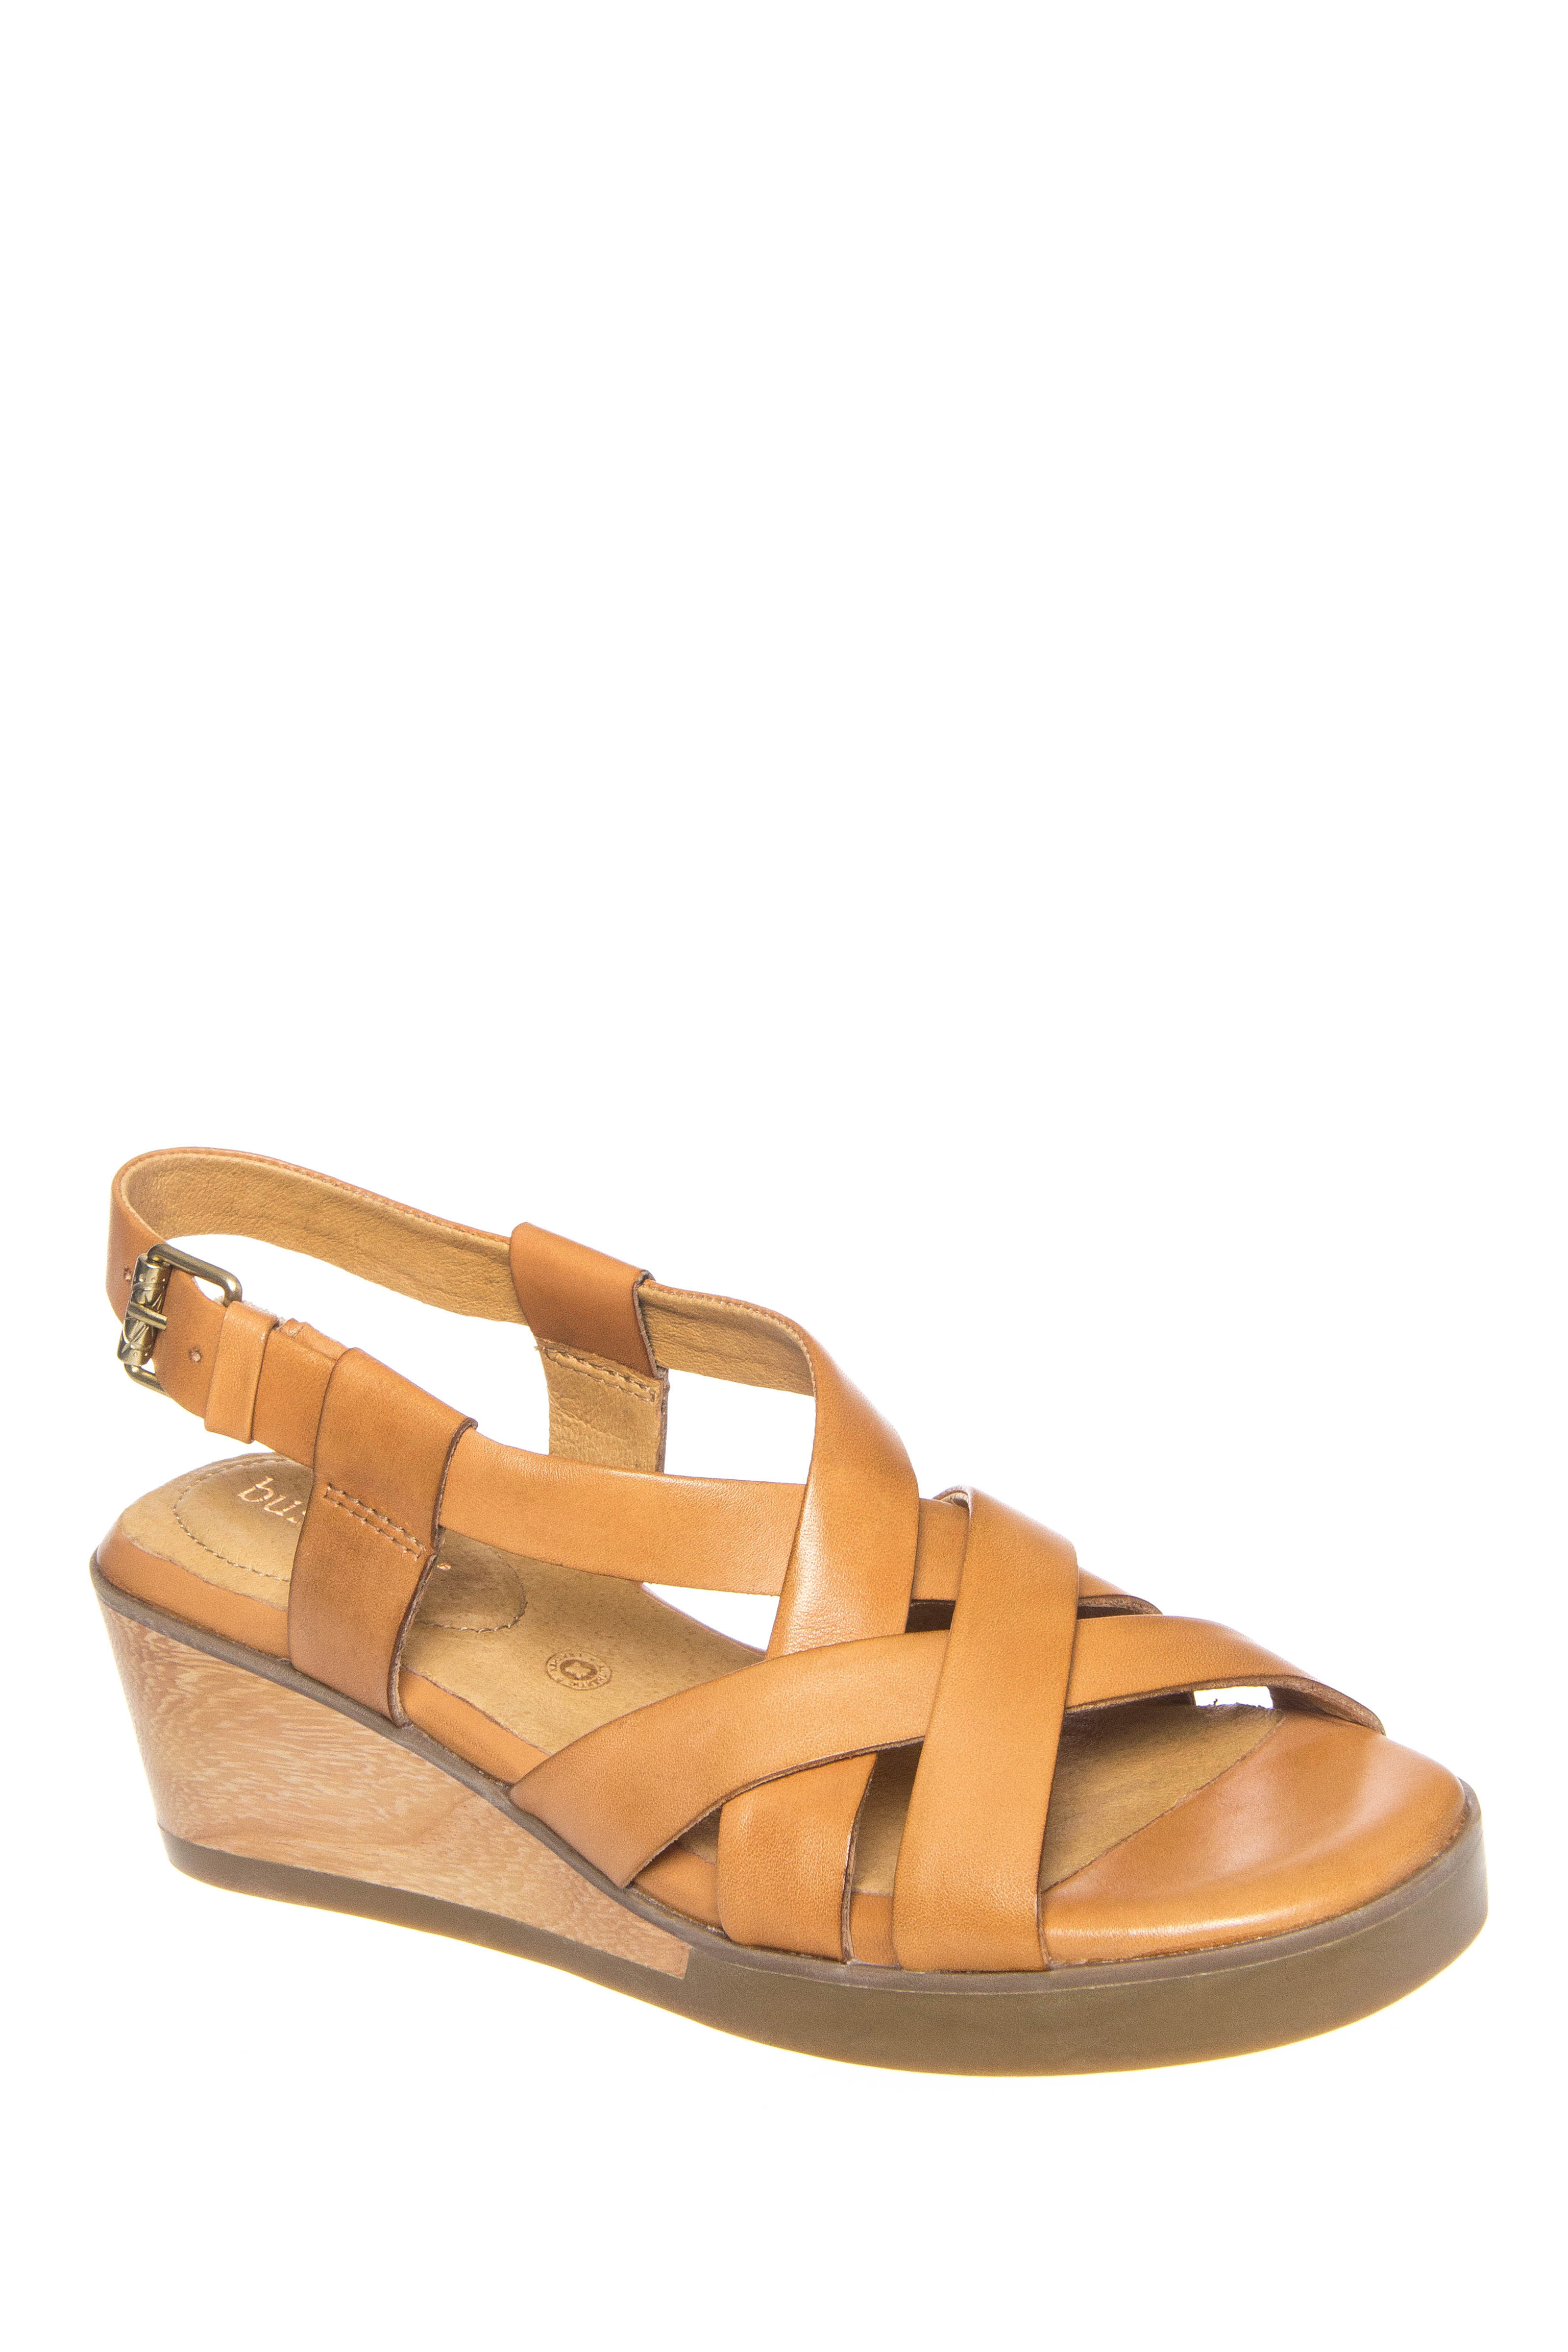 Bussola Massa Mid Wedge Sandals - Toffee